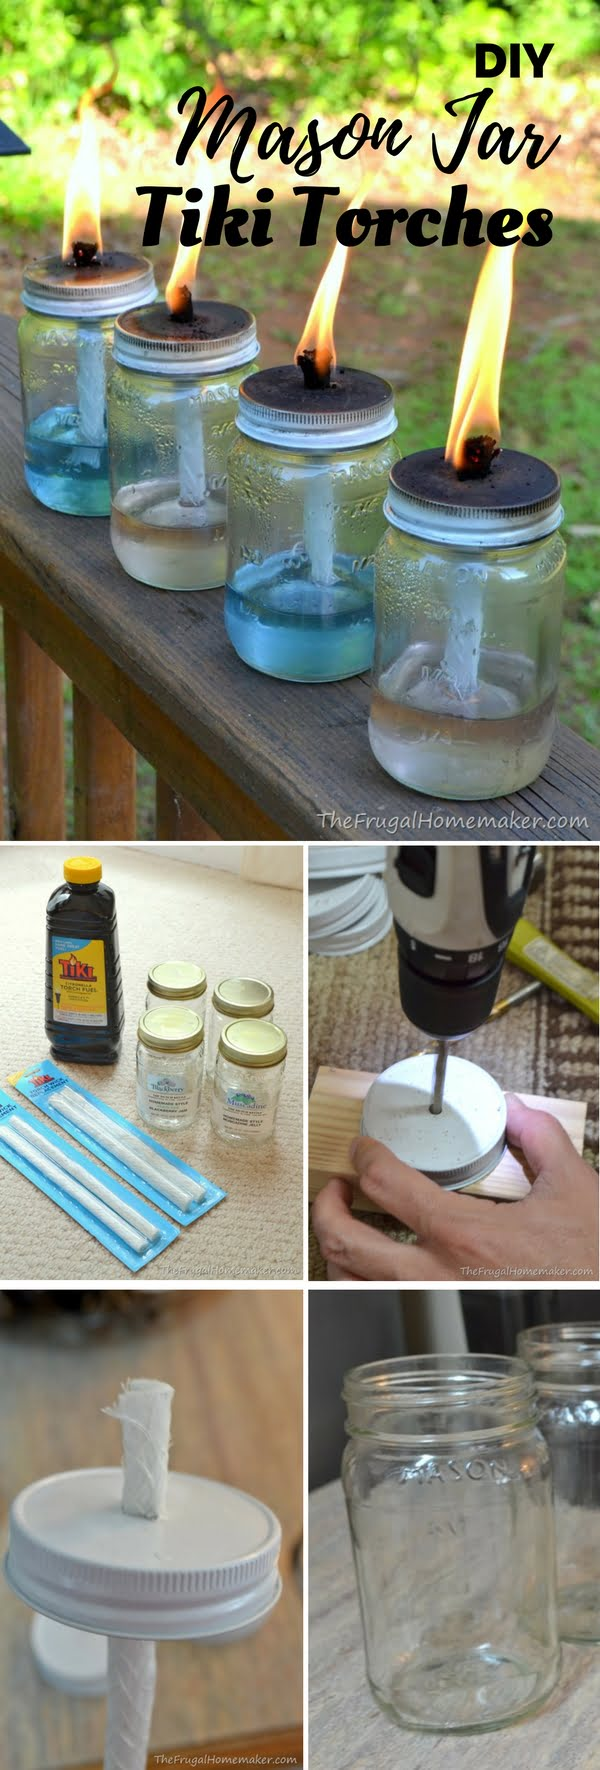 How to make  Mason Jar Tiki Torches